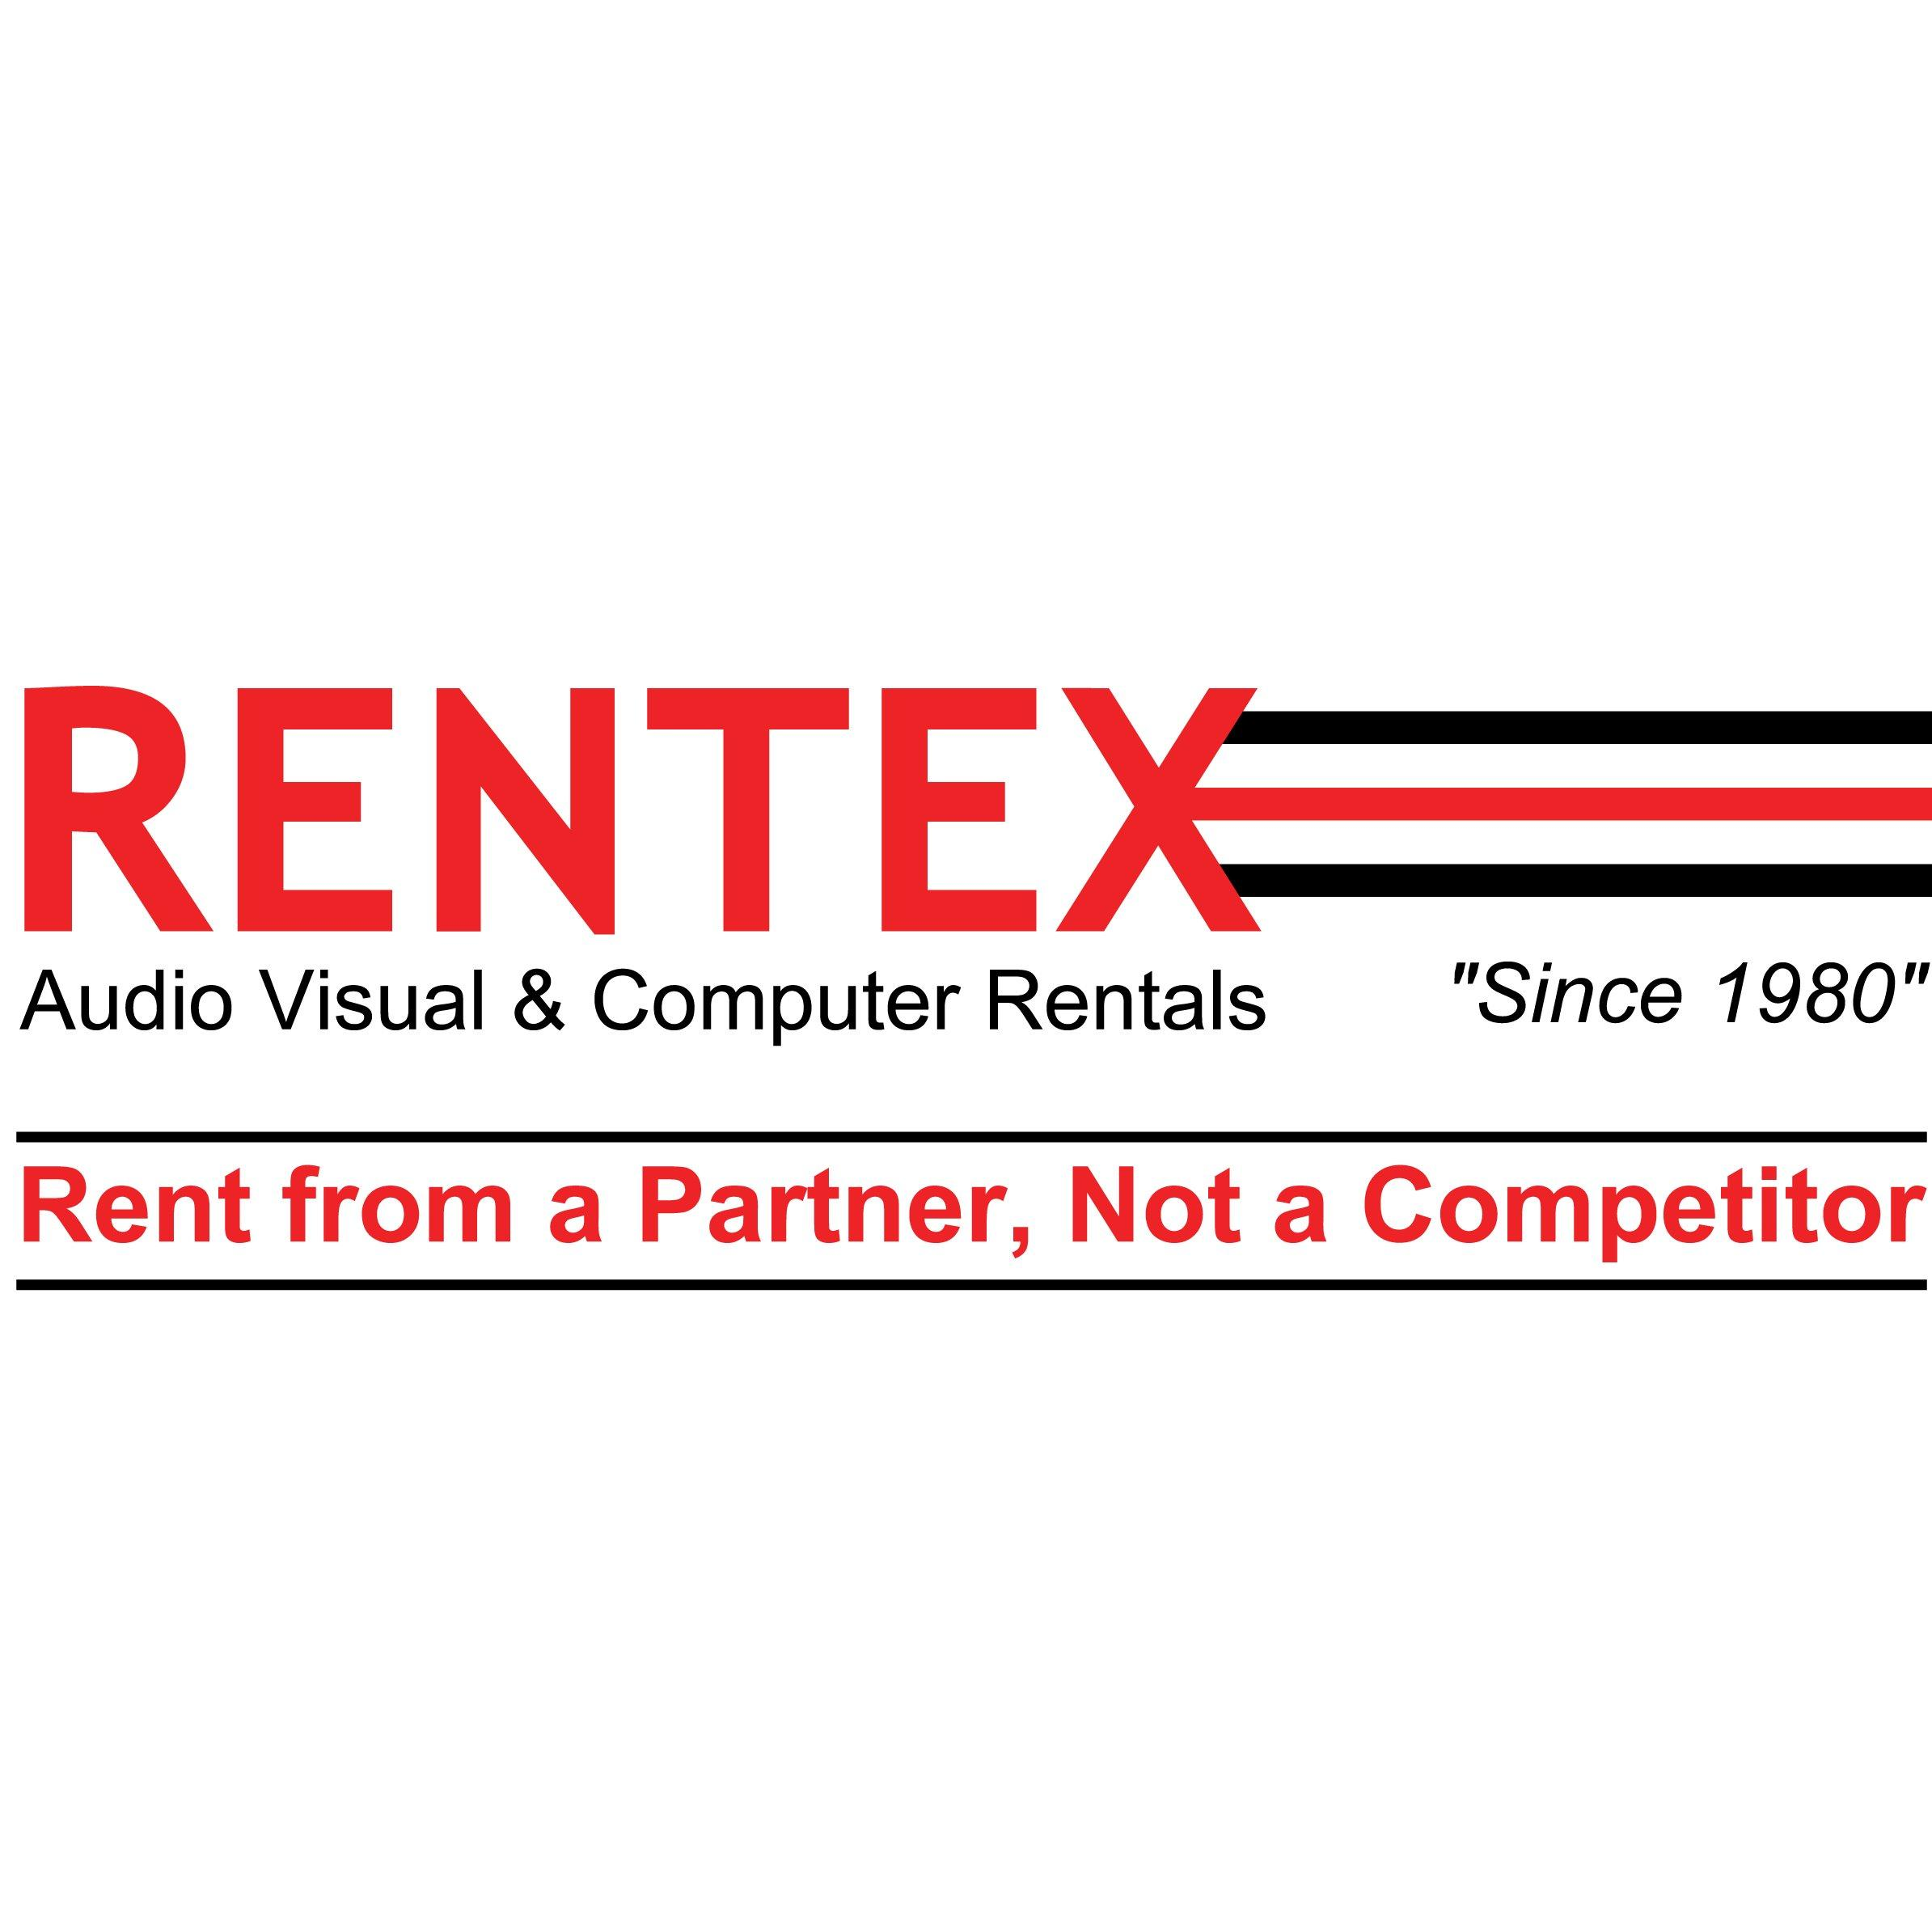 Rentex Audio Visual & Computer Rentals - Washington D.C.